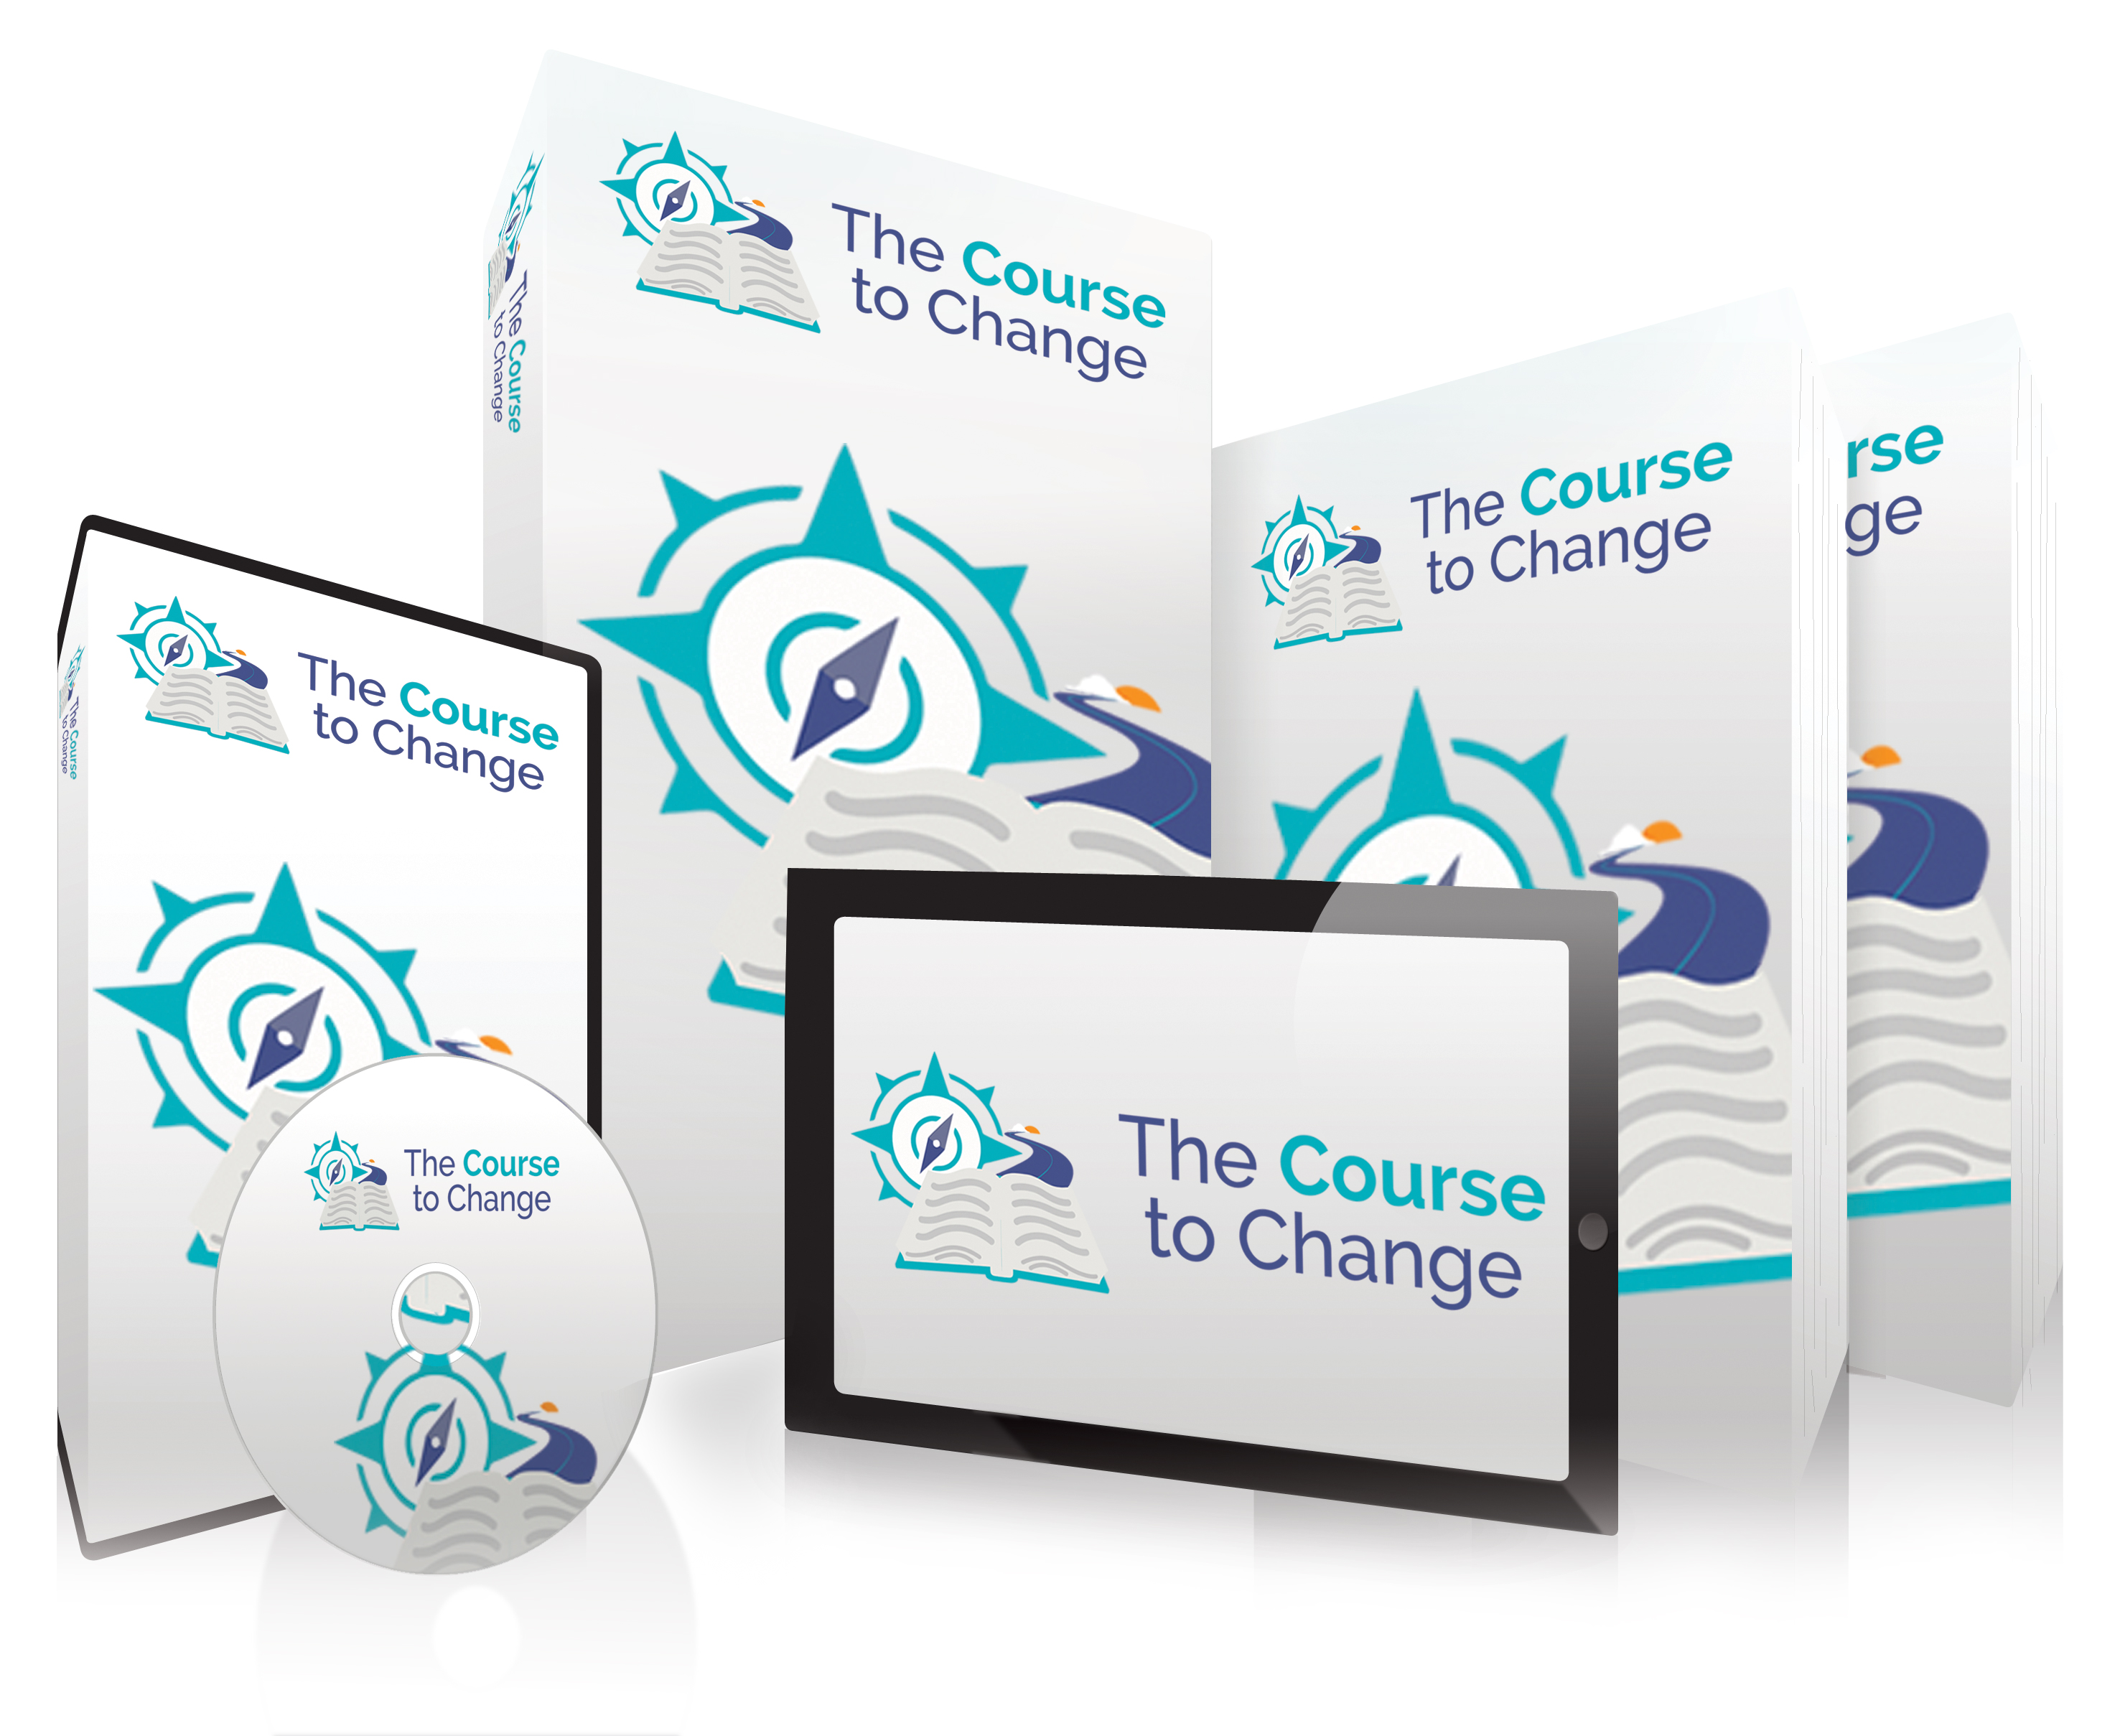 The Course to Change